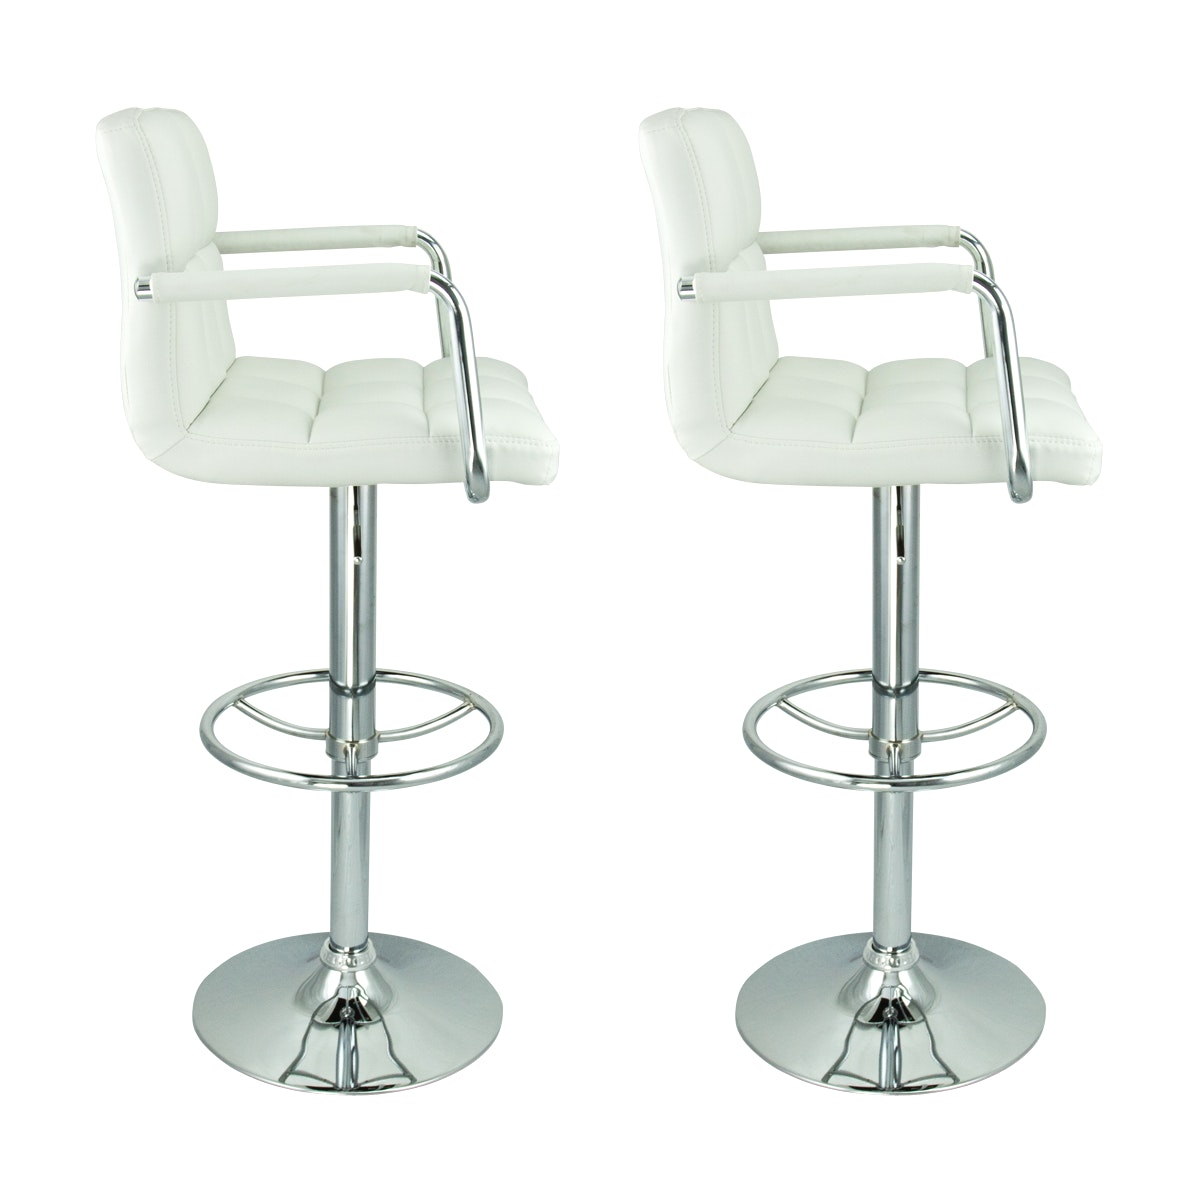 adjustable bar stools with backs and arms ... swivel white w arm pu leather modern adjustable hydraulic bar best with JJAQOEZ